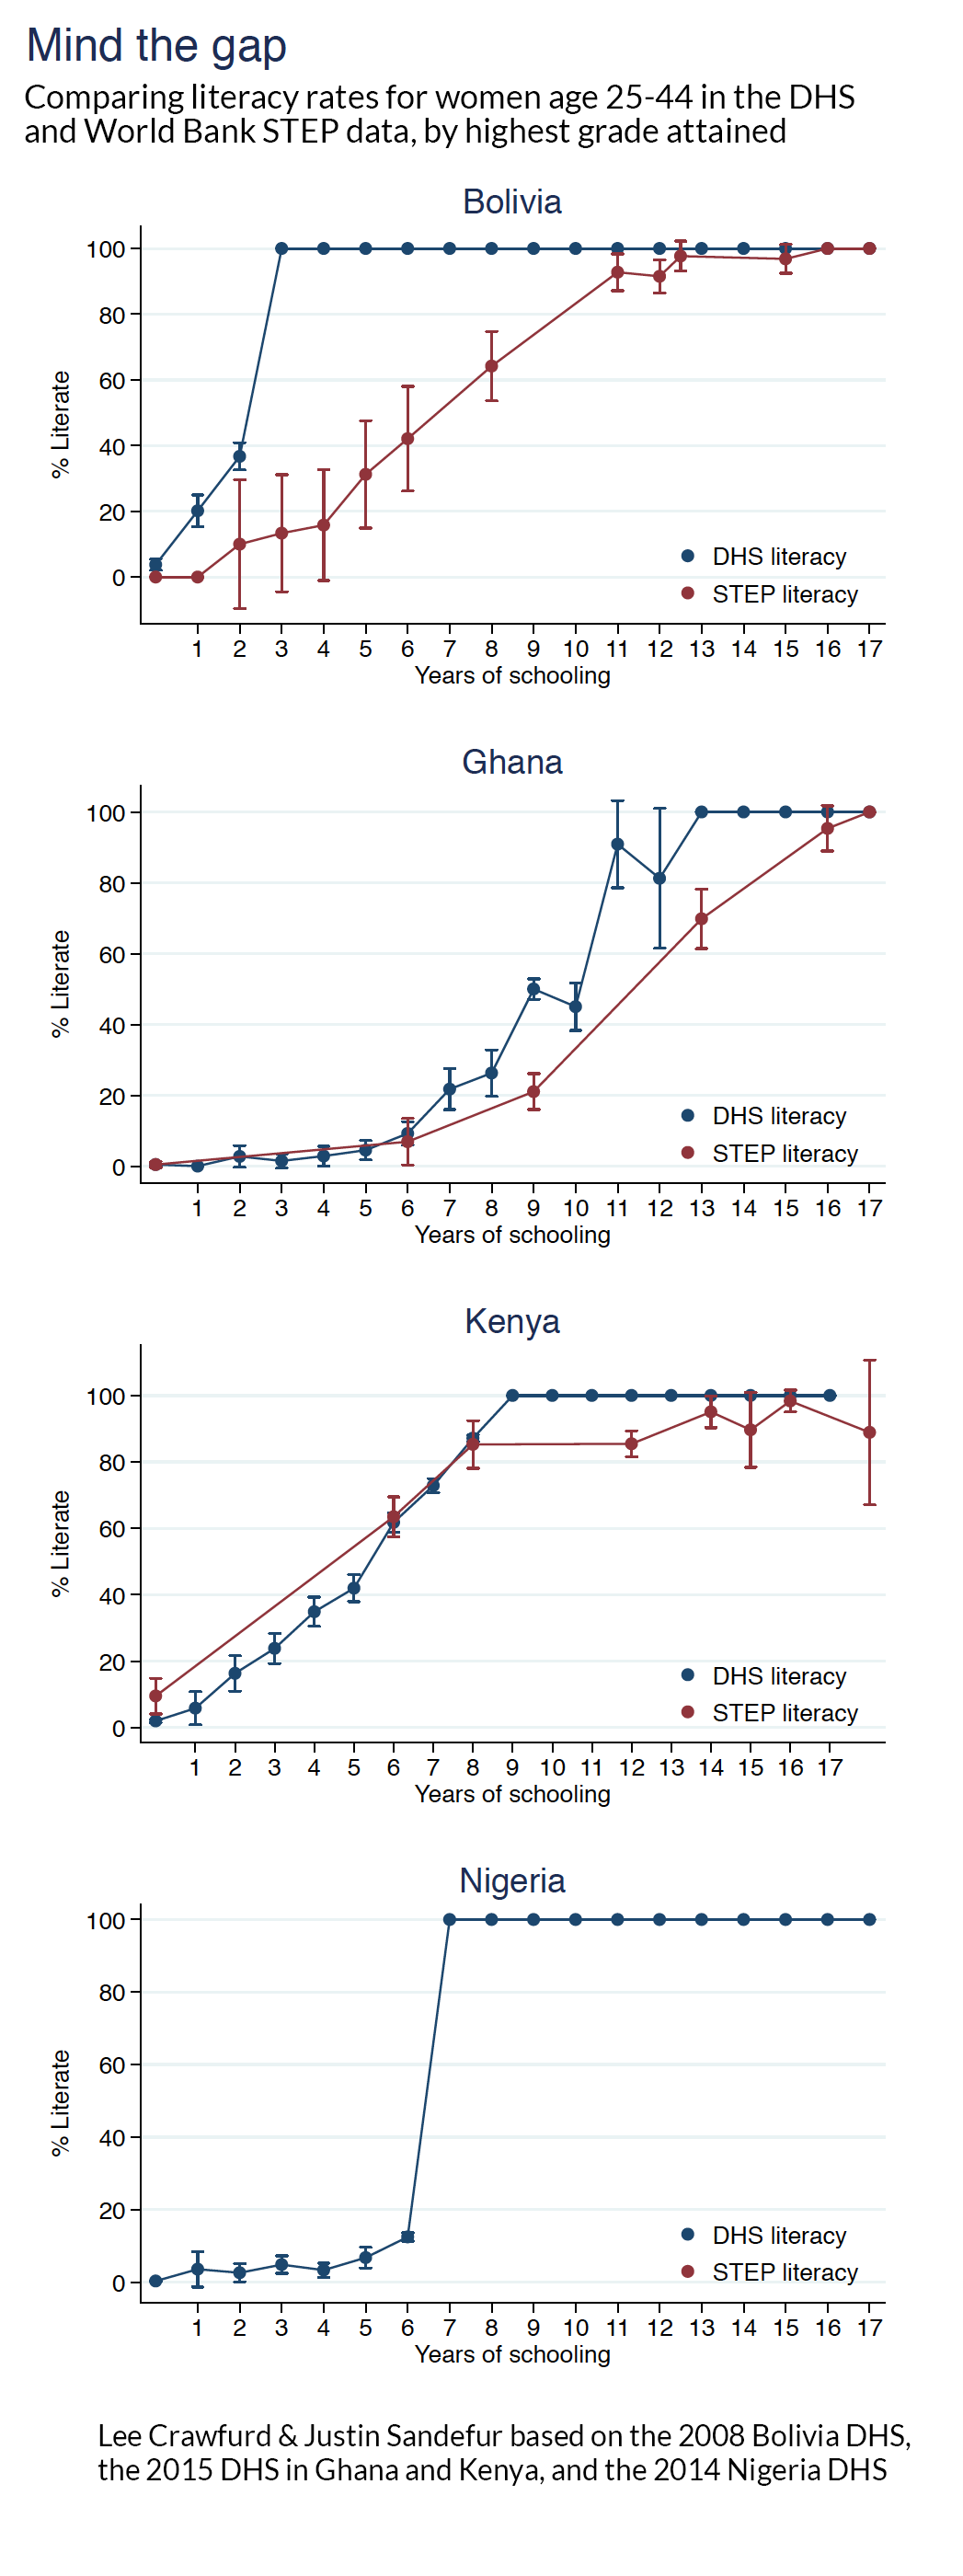 Comparing literacy rates for women age 25-44 in the DHS and World Bank STEP data, by highest grade attained